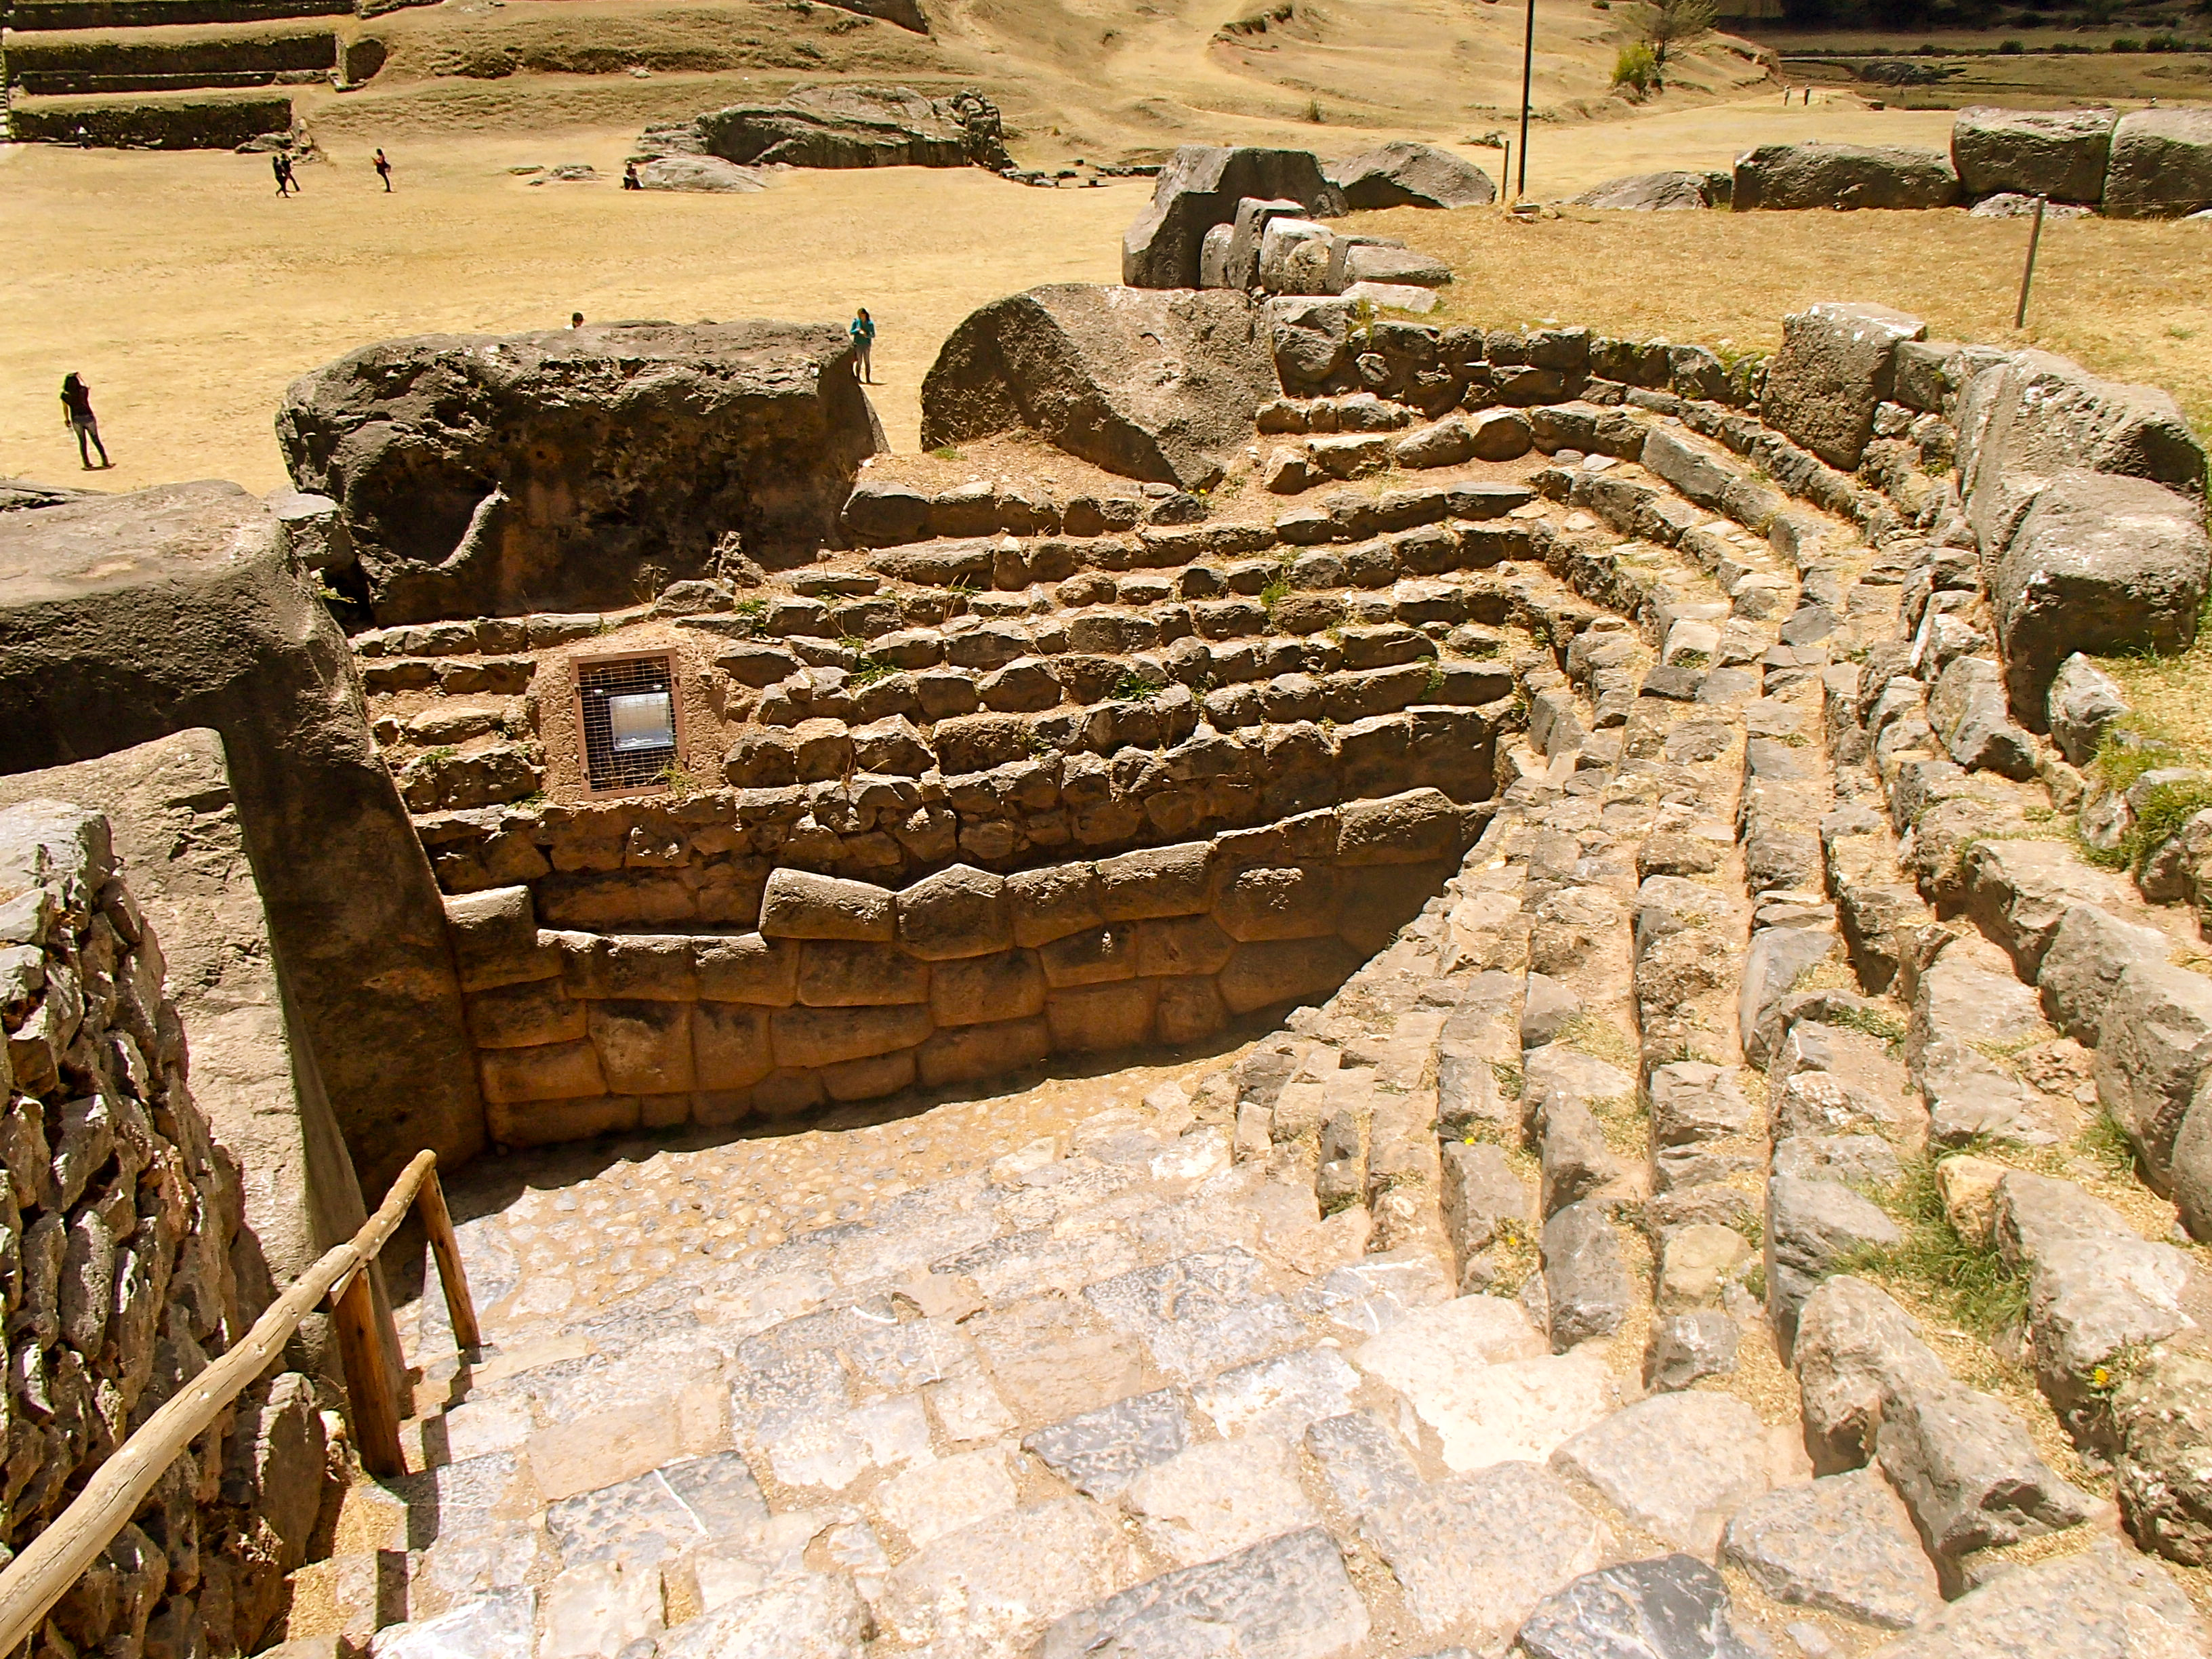 historical sites Sacsawaman in Cusco, peru culture attractions